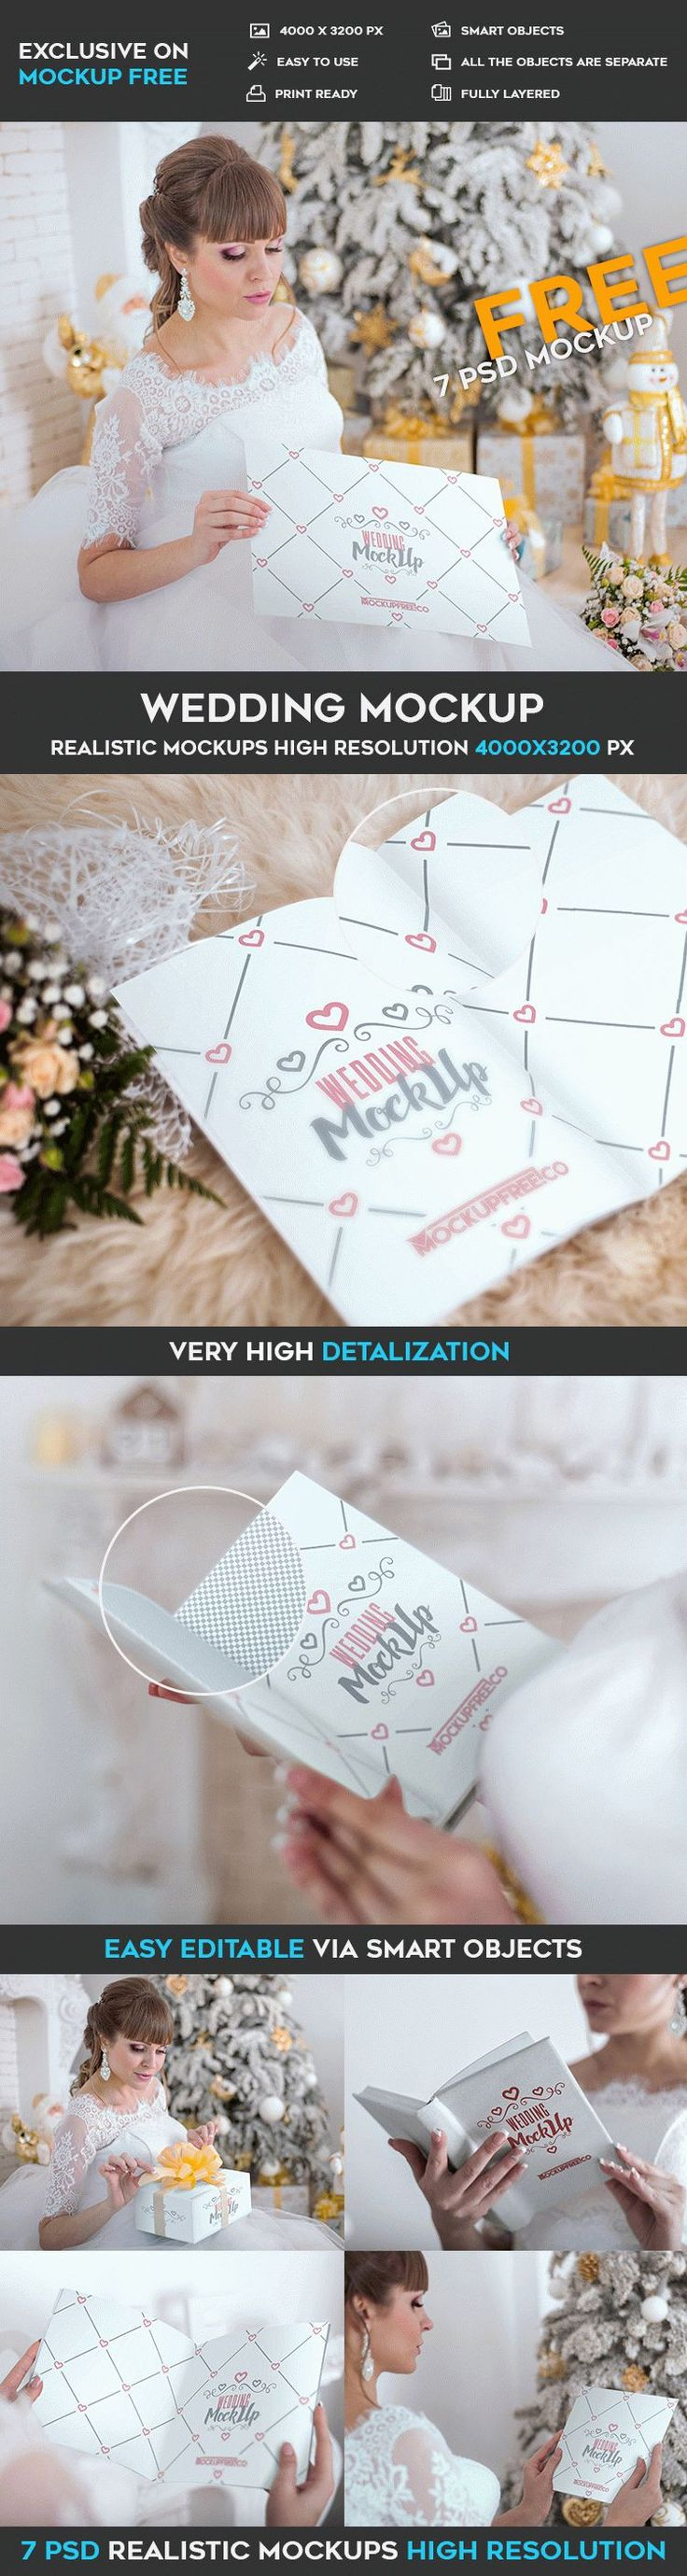 free wedding invitation psd%0A   Free Wedding Invitation  Poster  Book PSD Mockups   Free PSD Templates